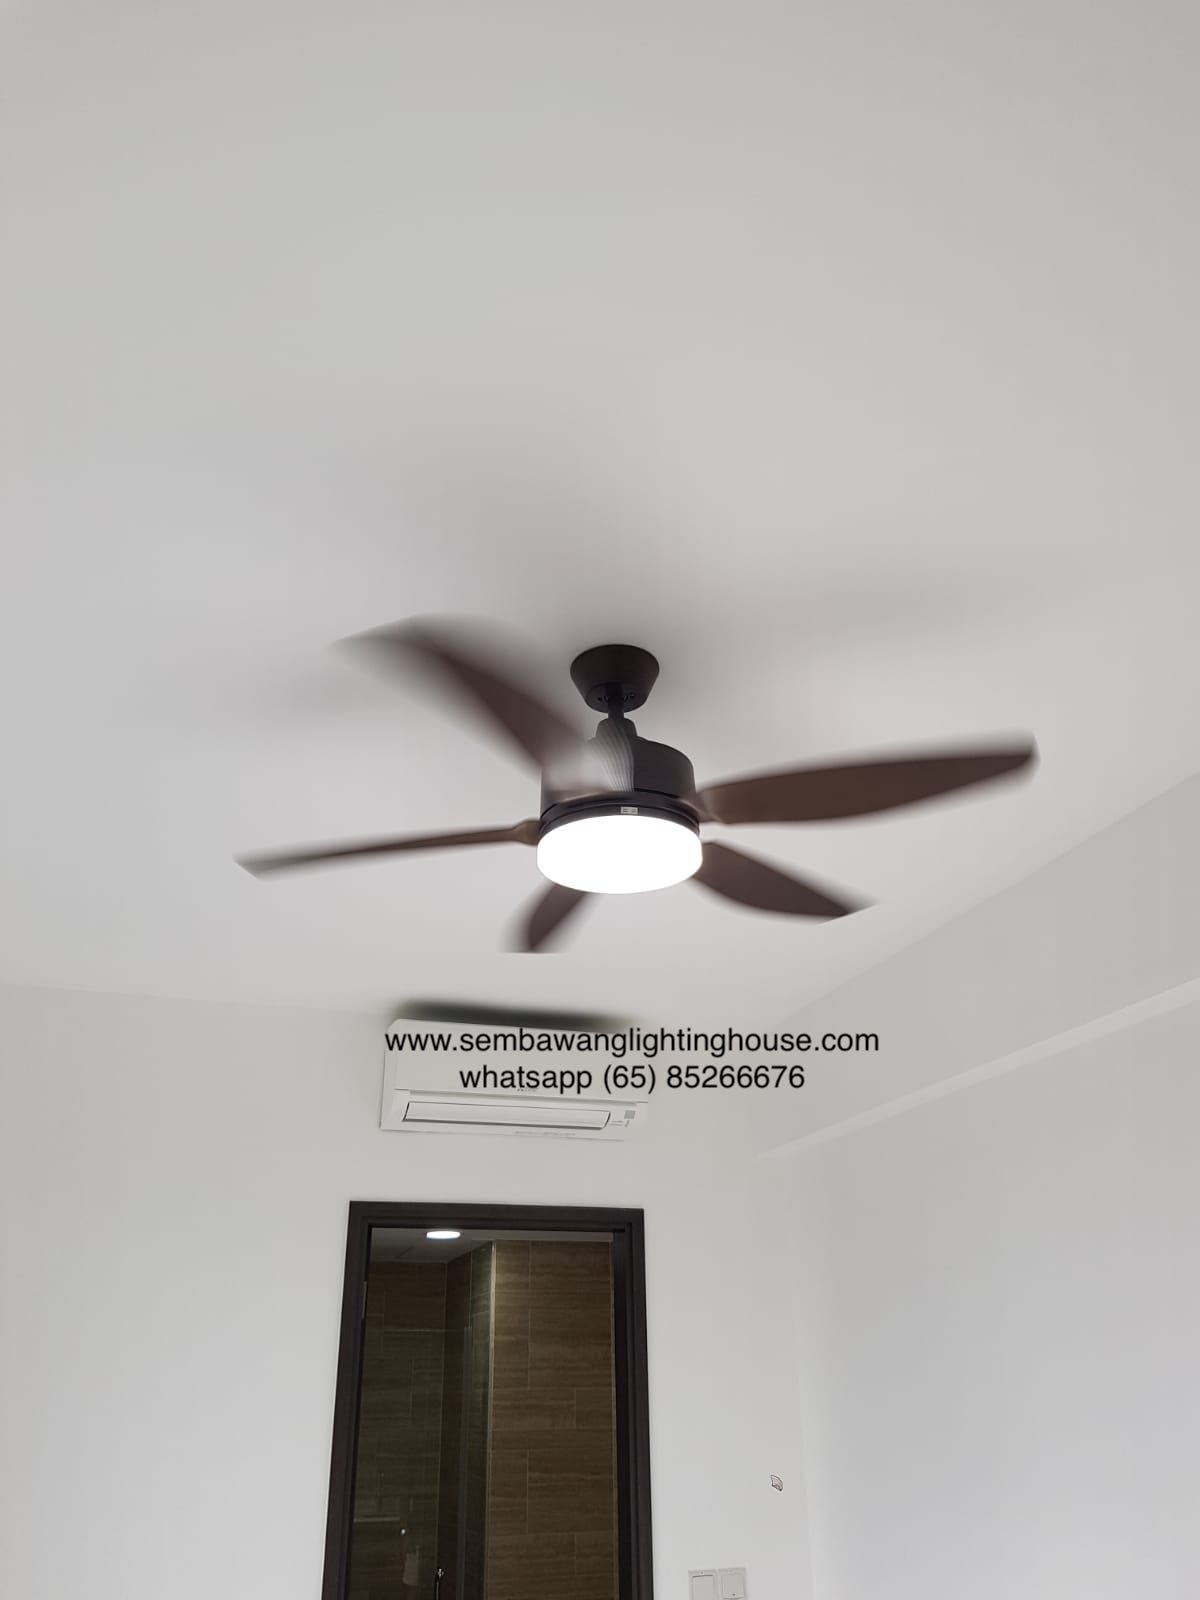 crestar-airis-5-blade-dark-brown-led-ceiling-fan-sample-sembawang-lighting-house-09.jpg